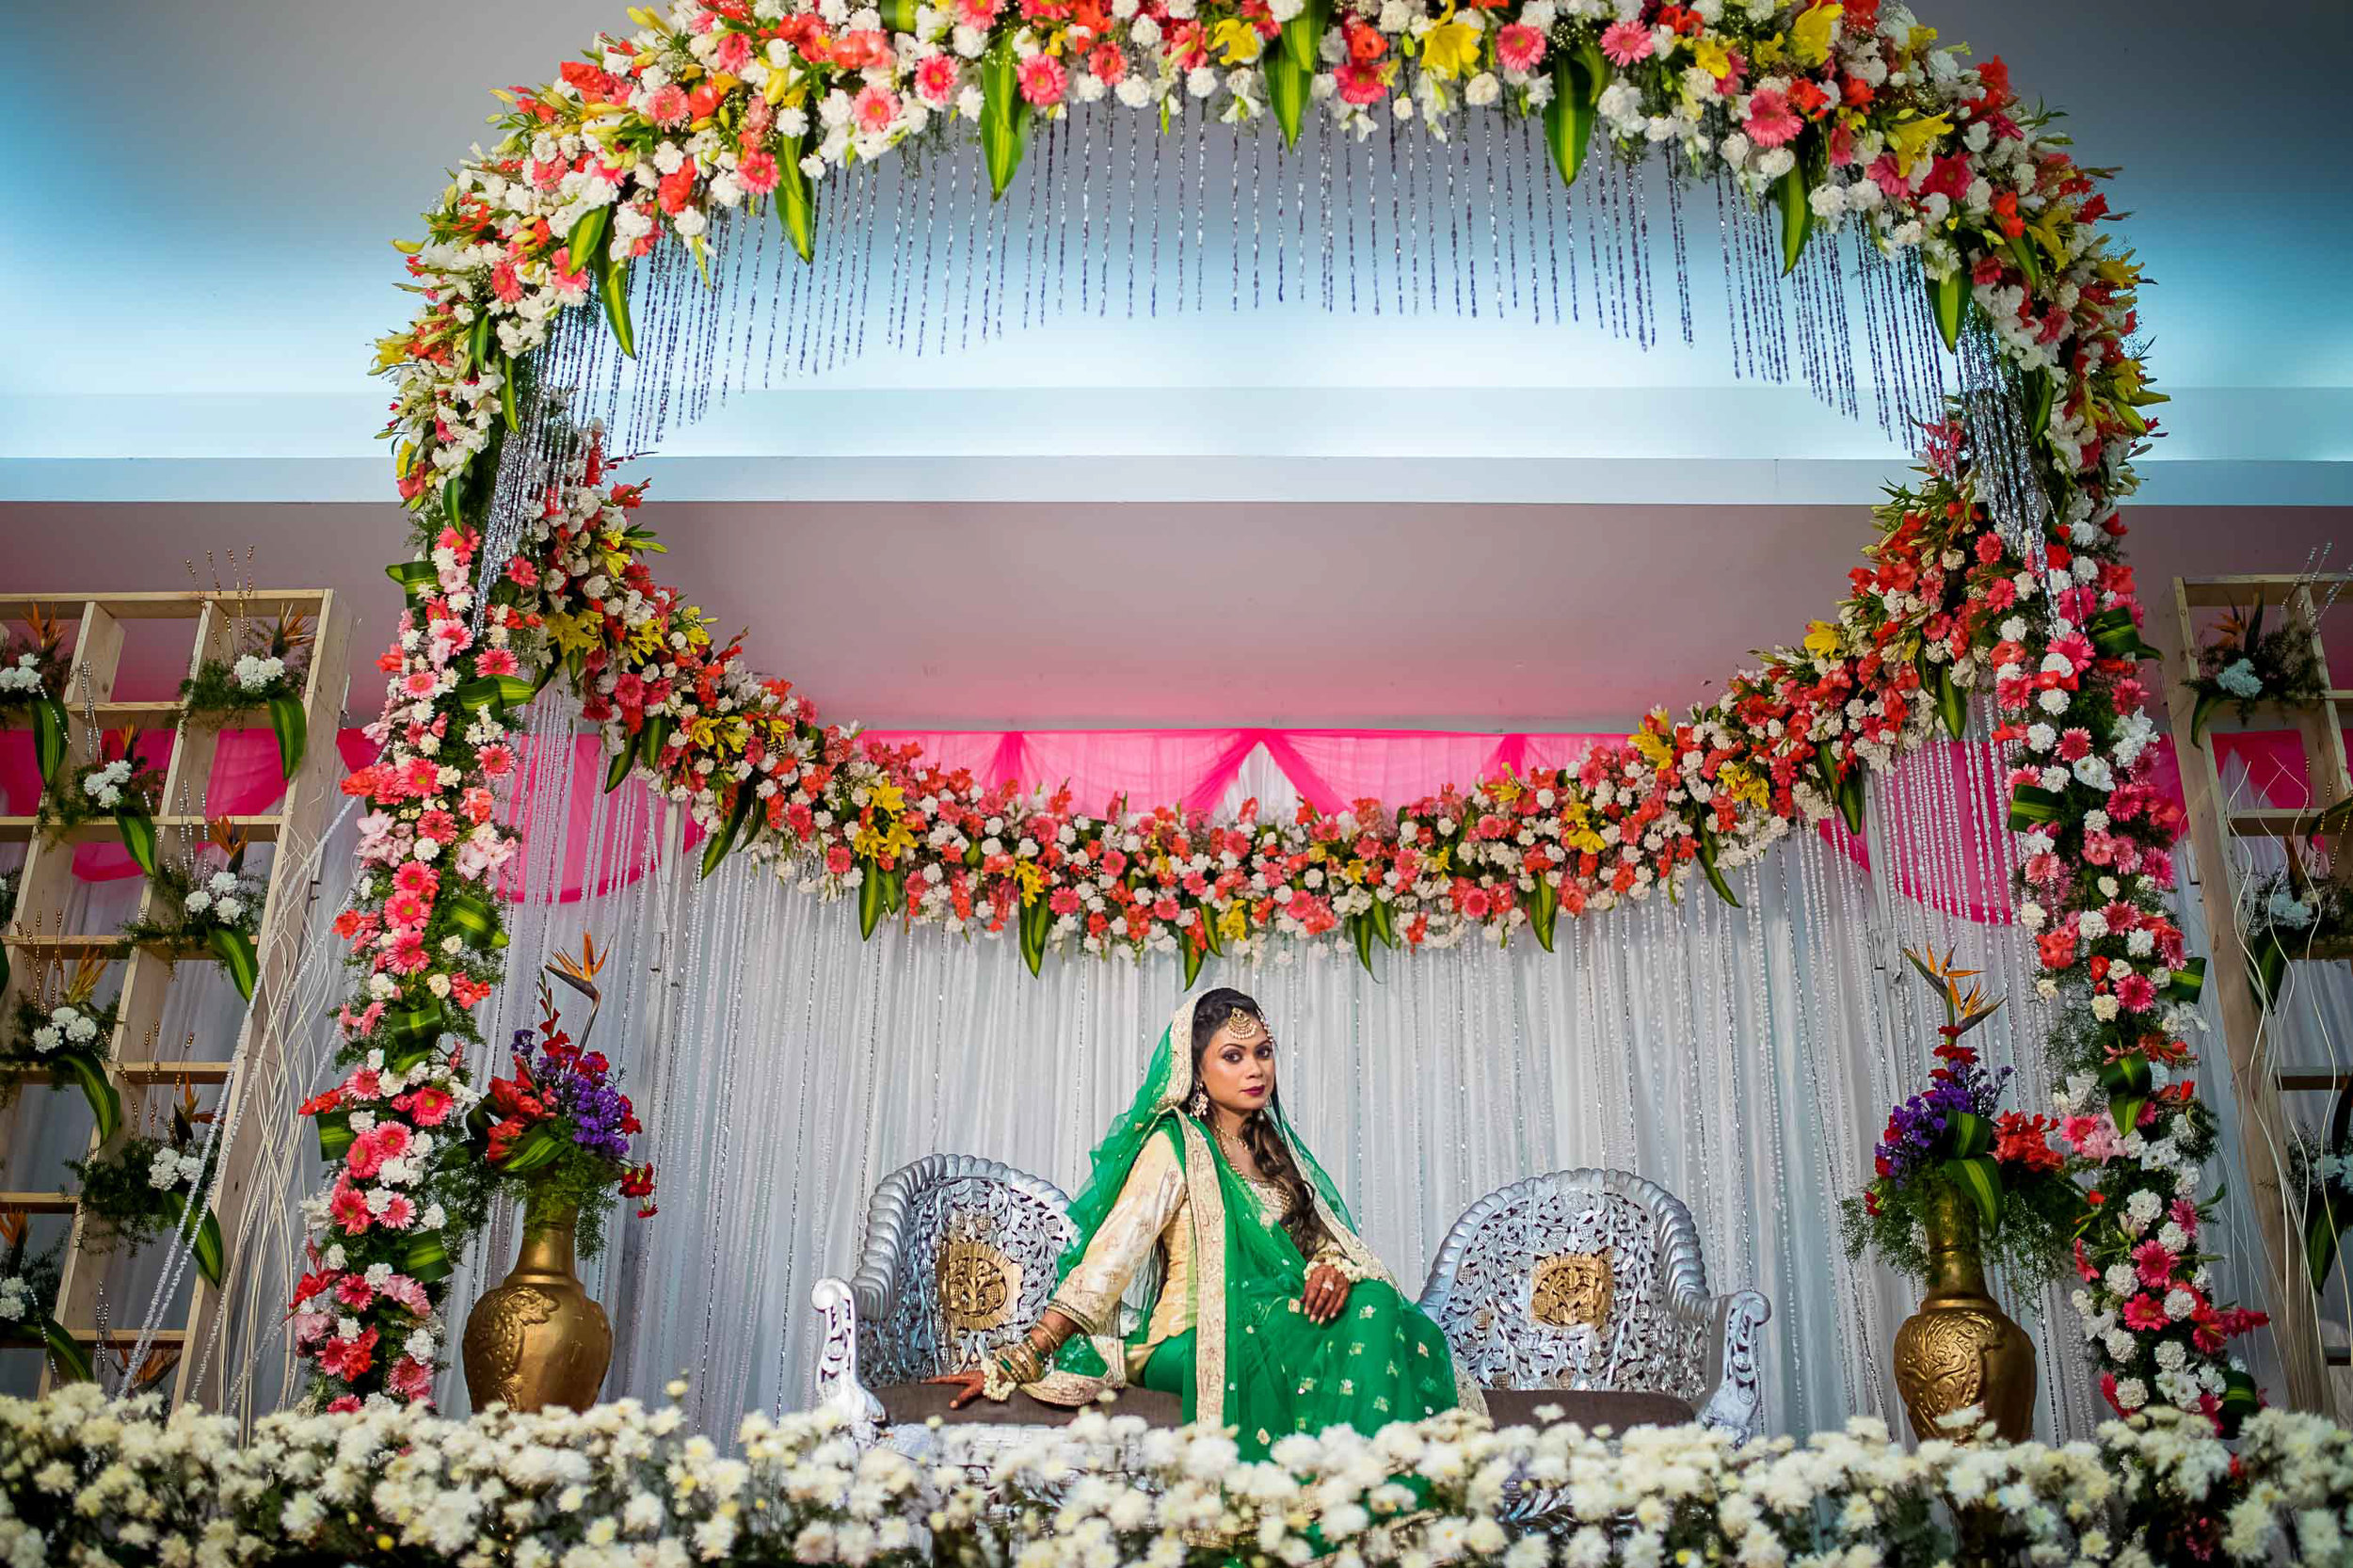 Pixel-Chronicles-Meraj-Yousuf-Candid-Wedding-Documentary-Photography-Beautiful-Bride-Best-Portrait-Muslim-Wedding-Perfect-Bride-51.jpg